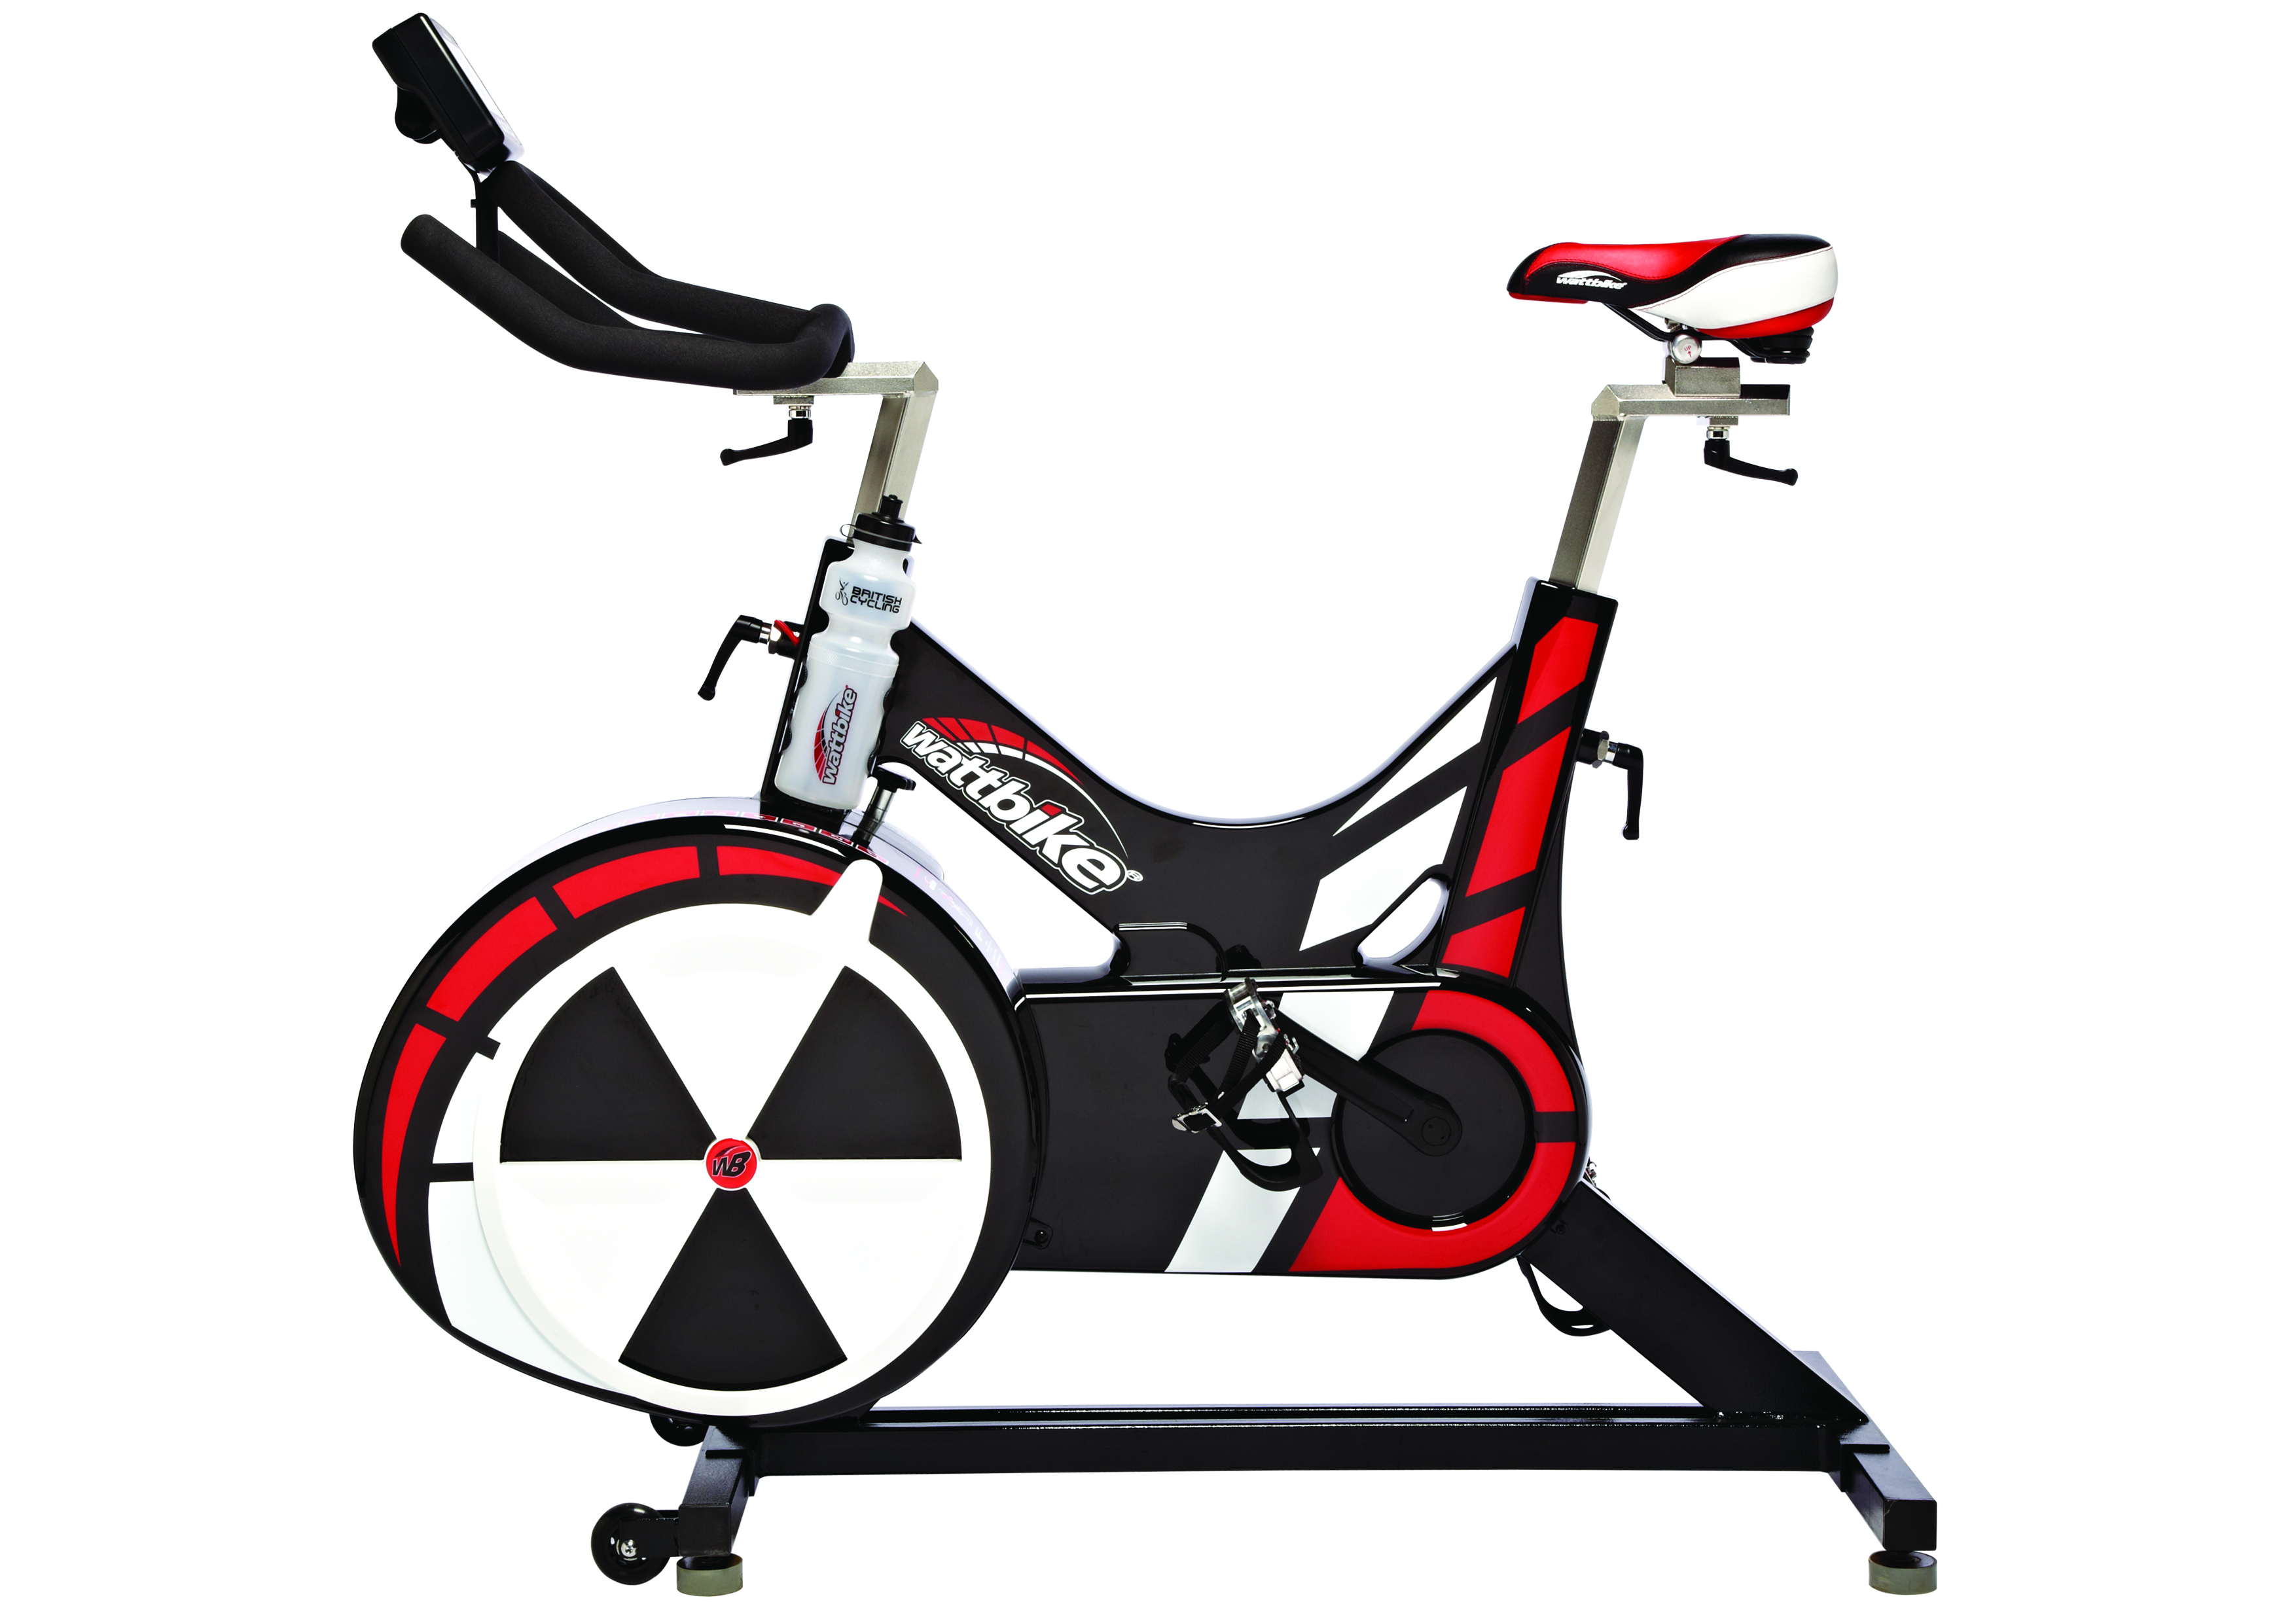 Wattbike Trainer, levering in de doos